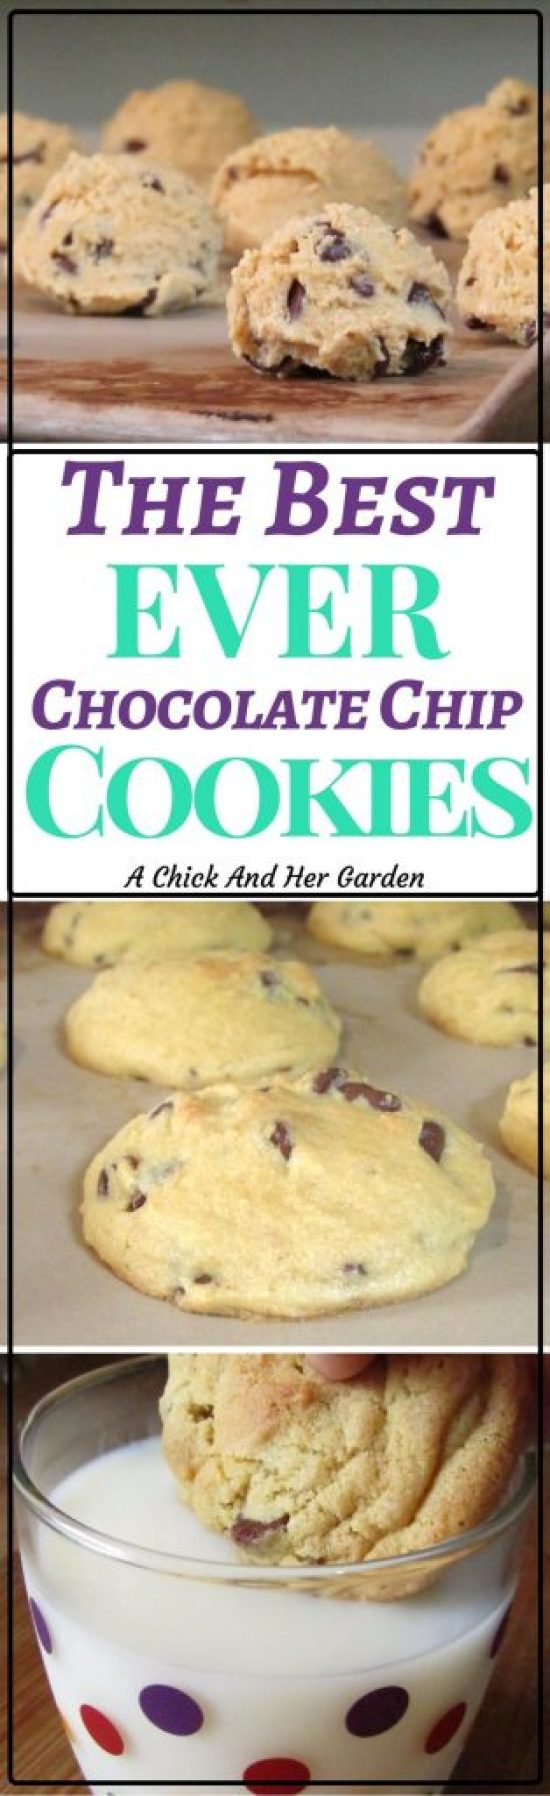 These chocolate chip cookies are so amazing you can use them as a form of payment!